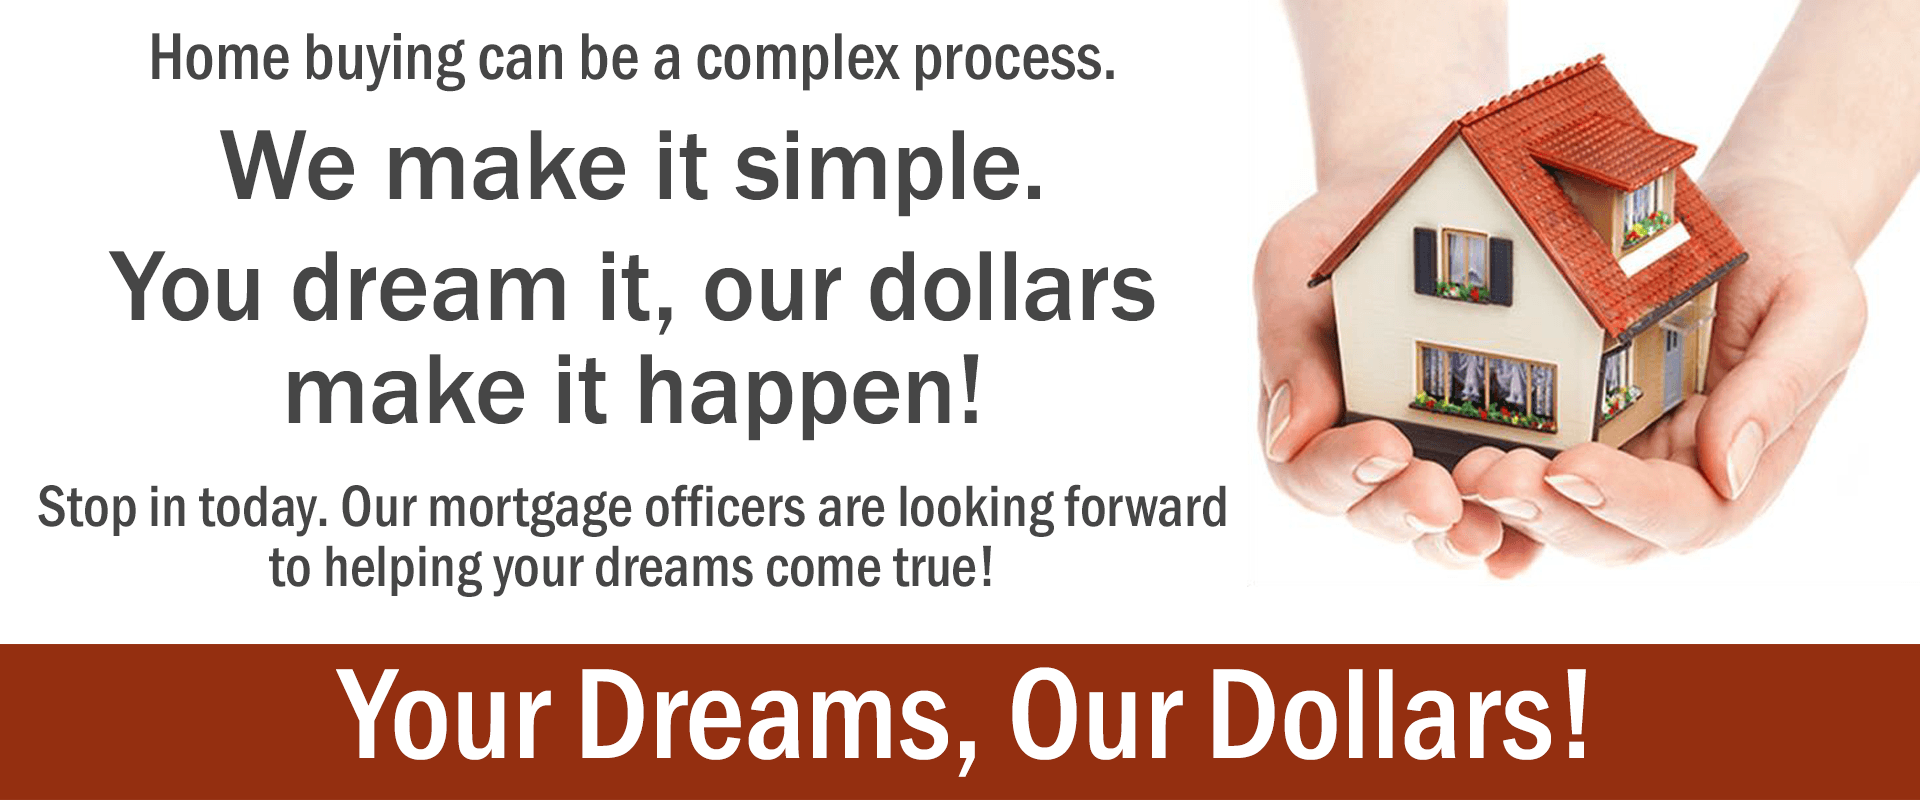 Home buying can be a complex process. We make it simple. You dream it, our dollars make it happen! Stop in today. Our mortgage officers are looking forward to helping your dreams come true!